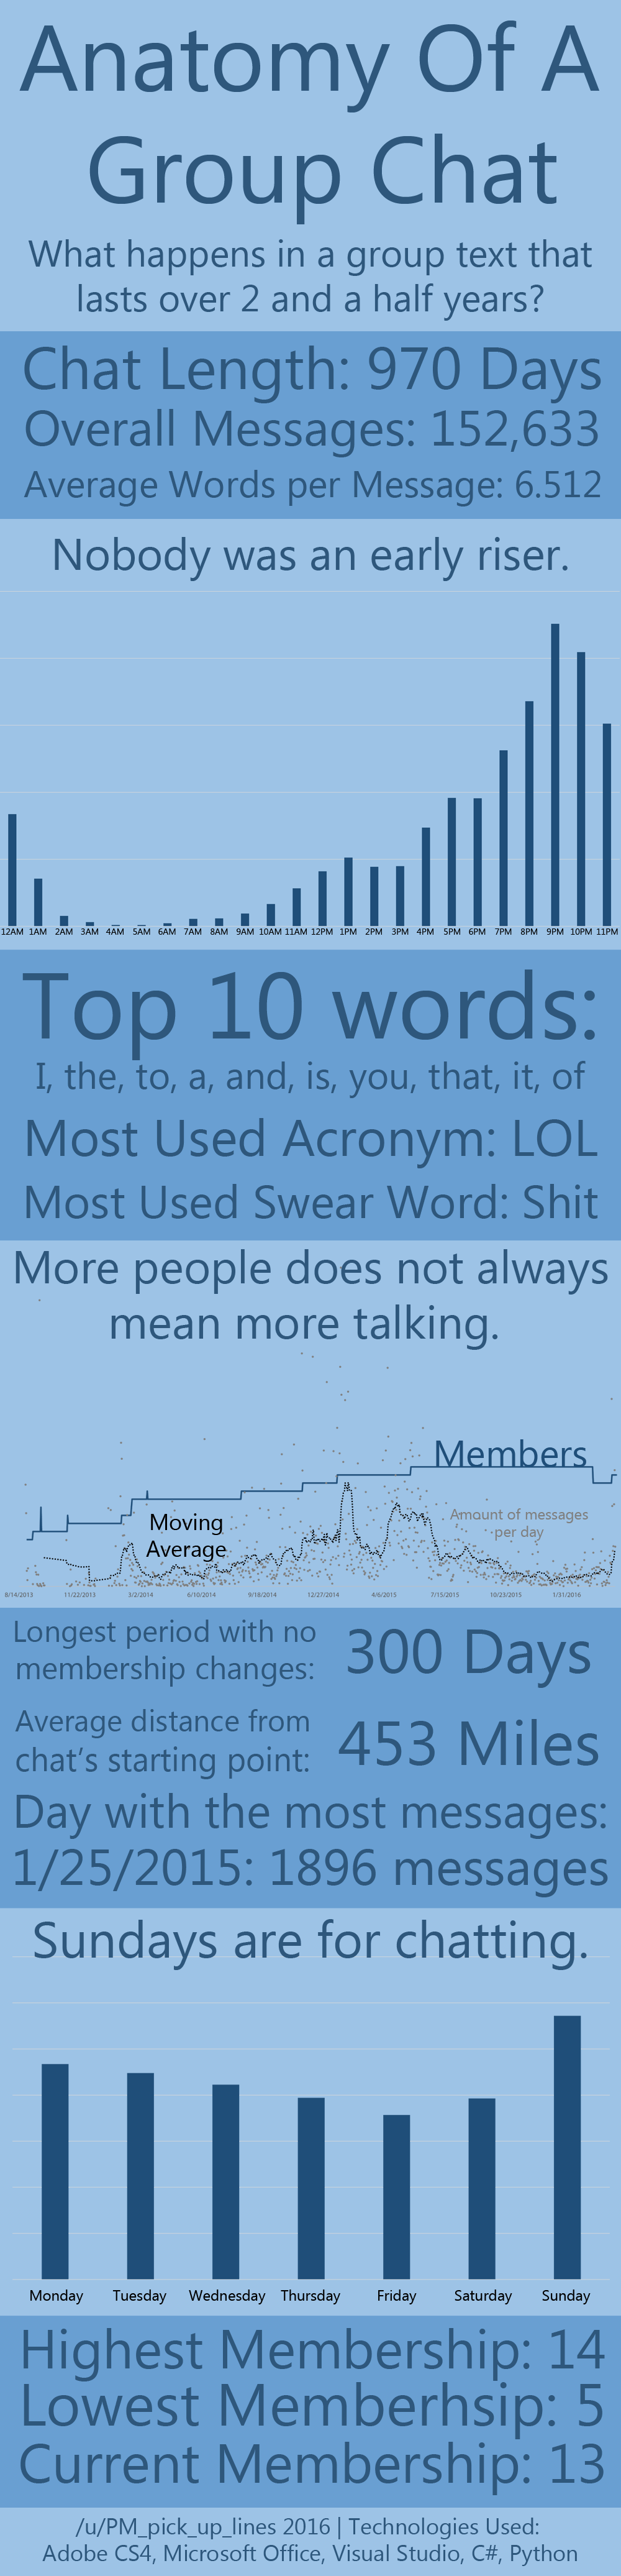 [OC] Insight from a group chat with 150k messages